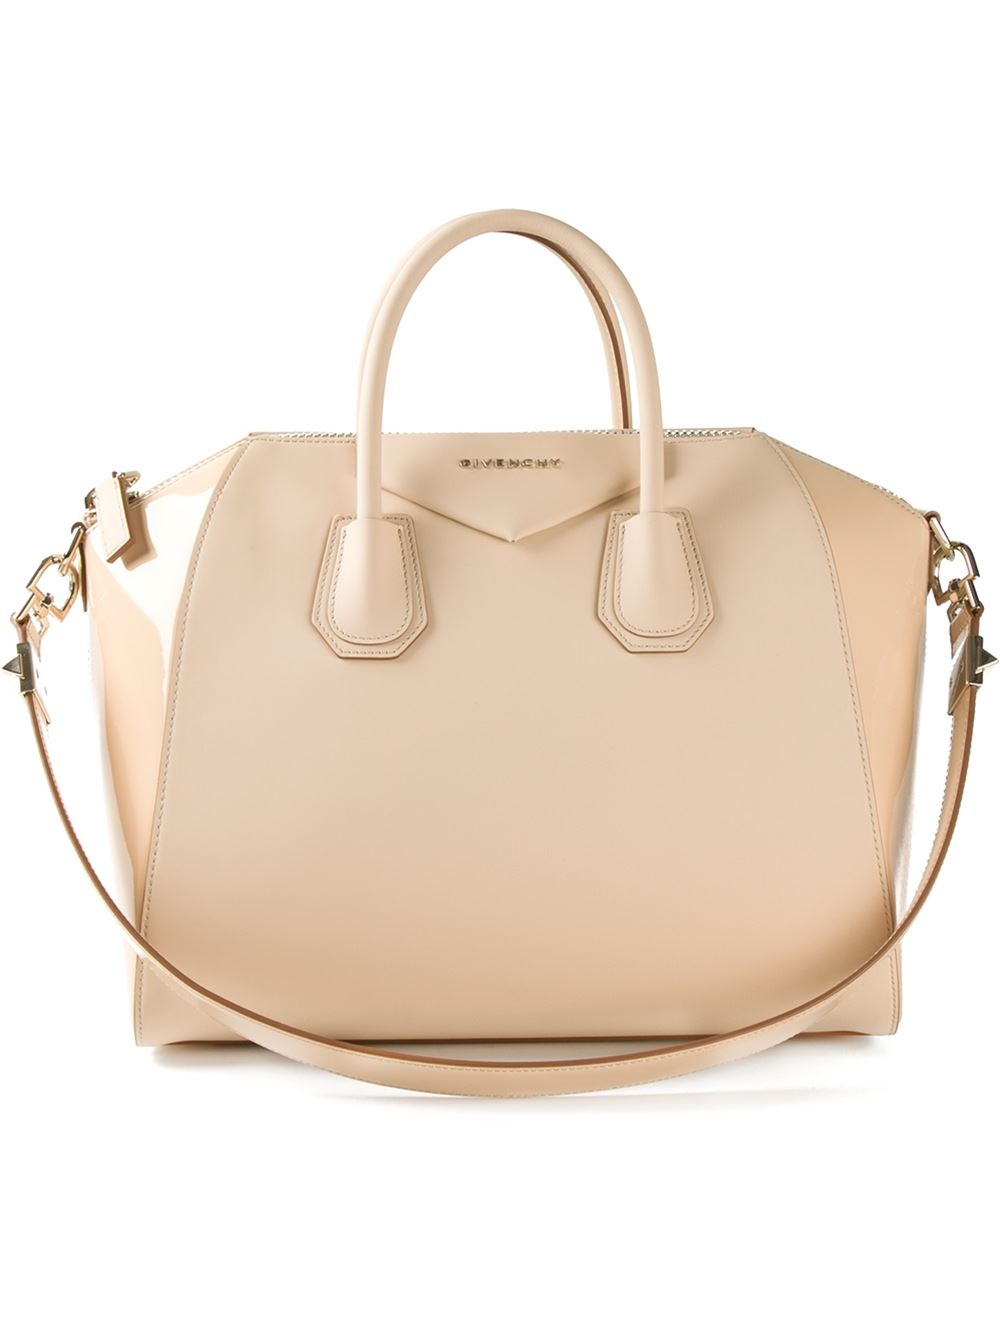 6acdb45afd67 Previously sold at Farfetch · Womens Givenchy Antigona buy online 17b78  48a86  Givenchy Small ...